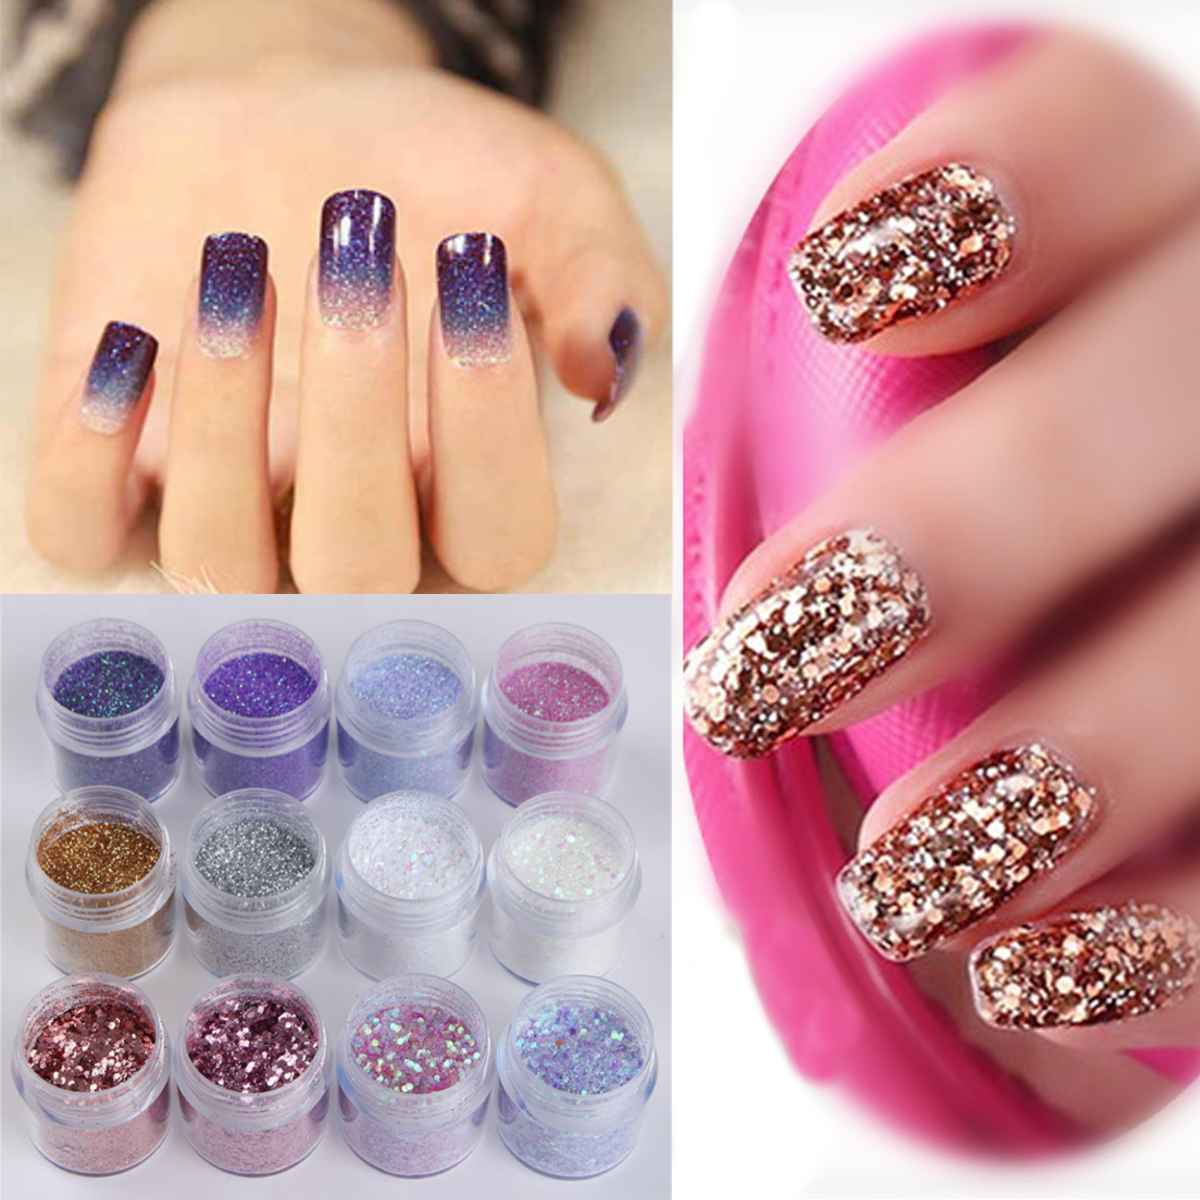 Nails Art Powder Glitter Mixed Sequins Decoration DIY Decoration 12 Boxes/Set